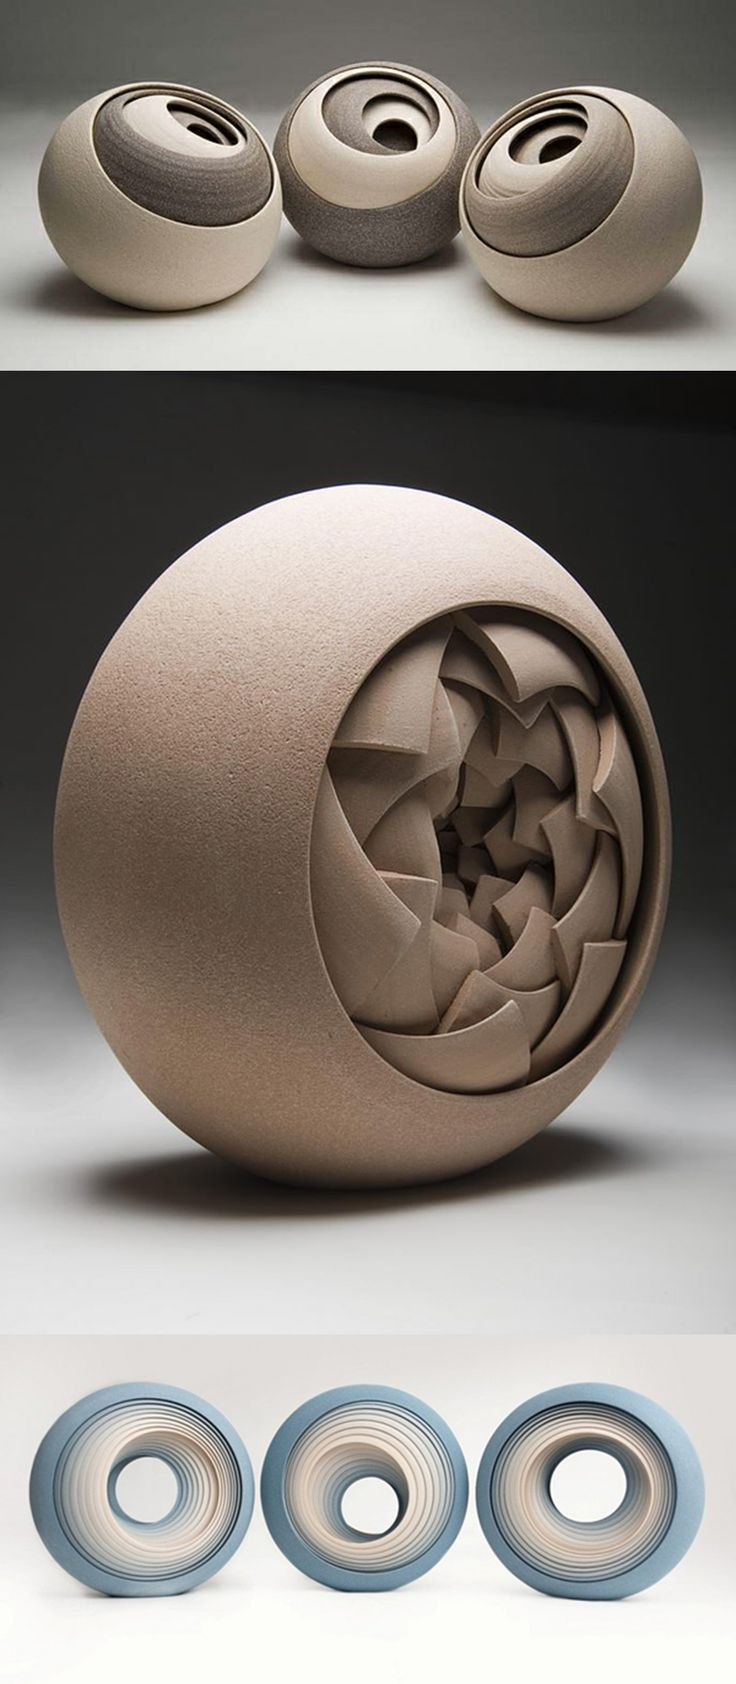 Contemporary Ceramic Sculptures by Matthew Chambers.  His works were born of a love for geometric shapes and constructivists, combined with the earthy tones of the ceramic. Each piece is constructed from multiple concentric layers that form circular objects.